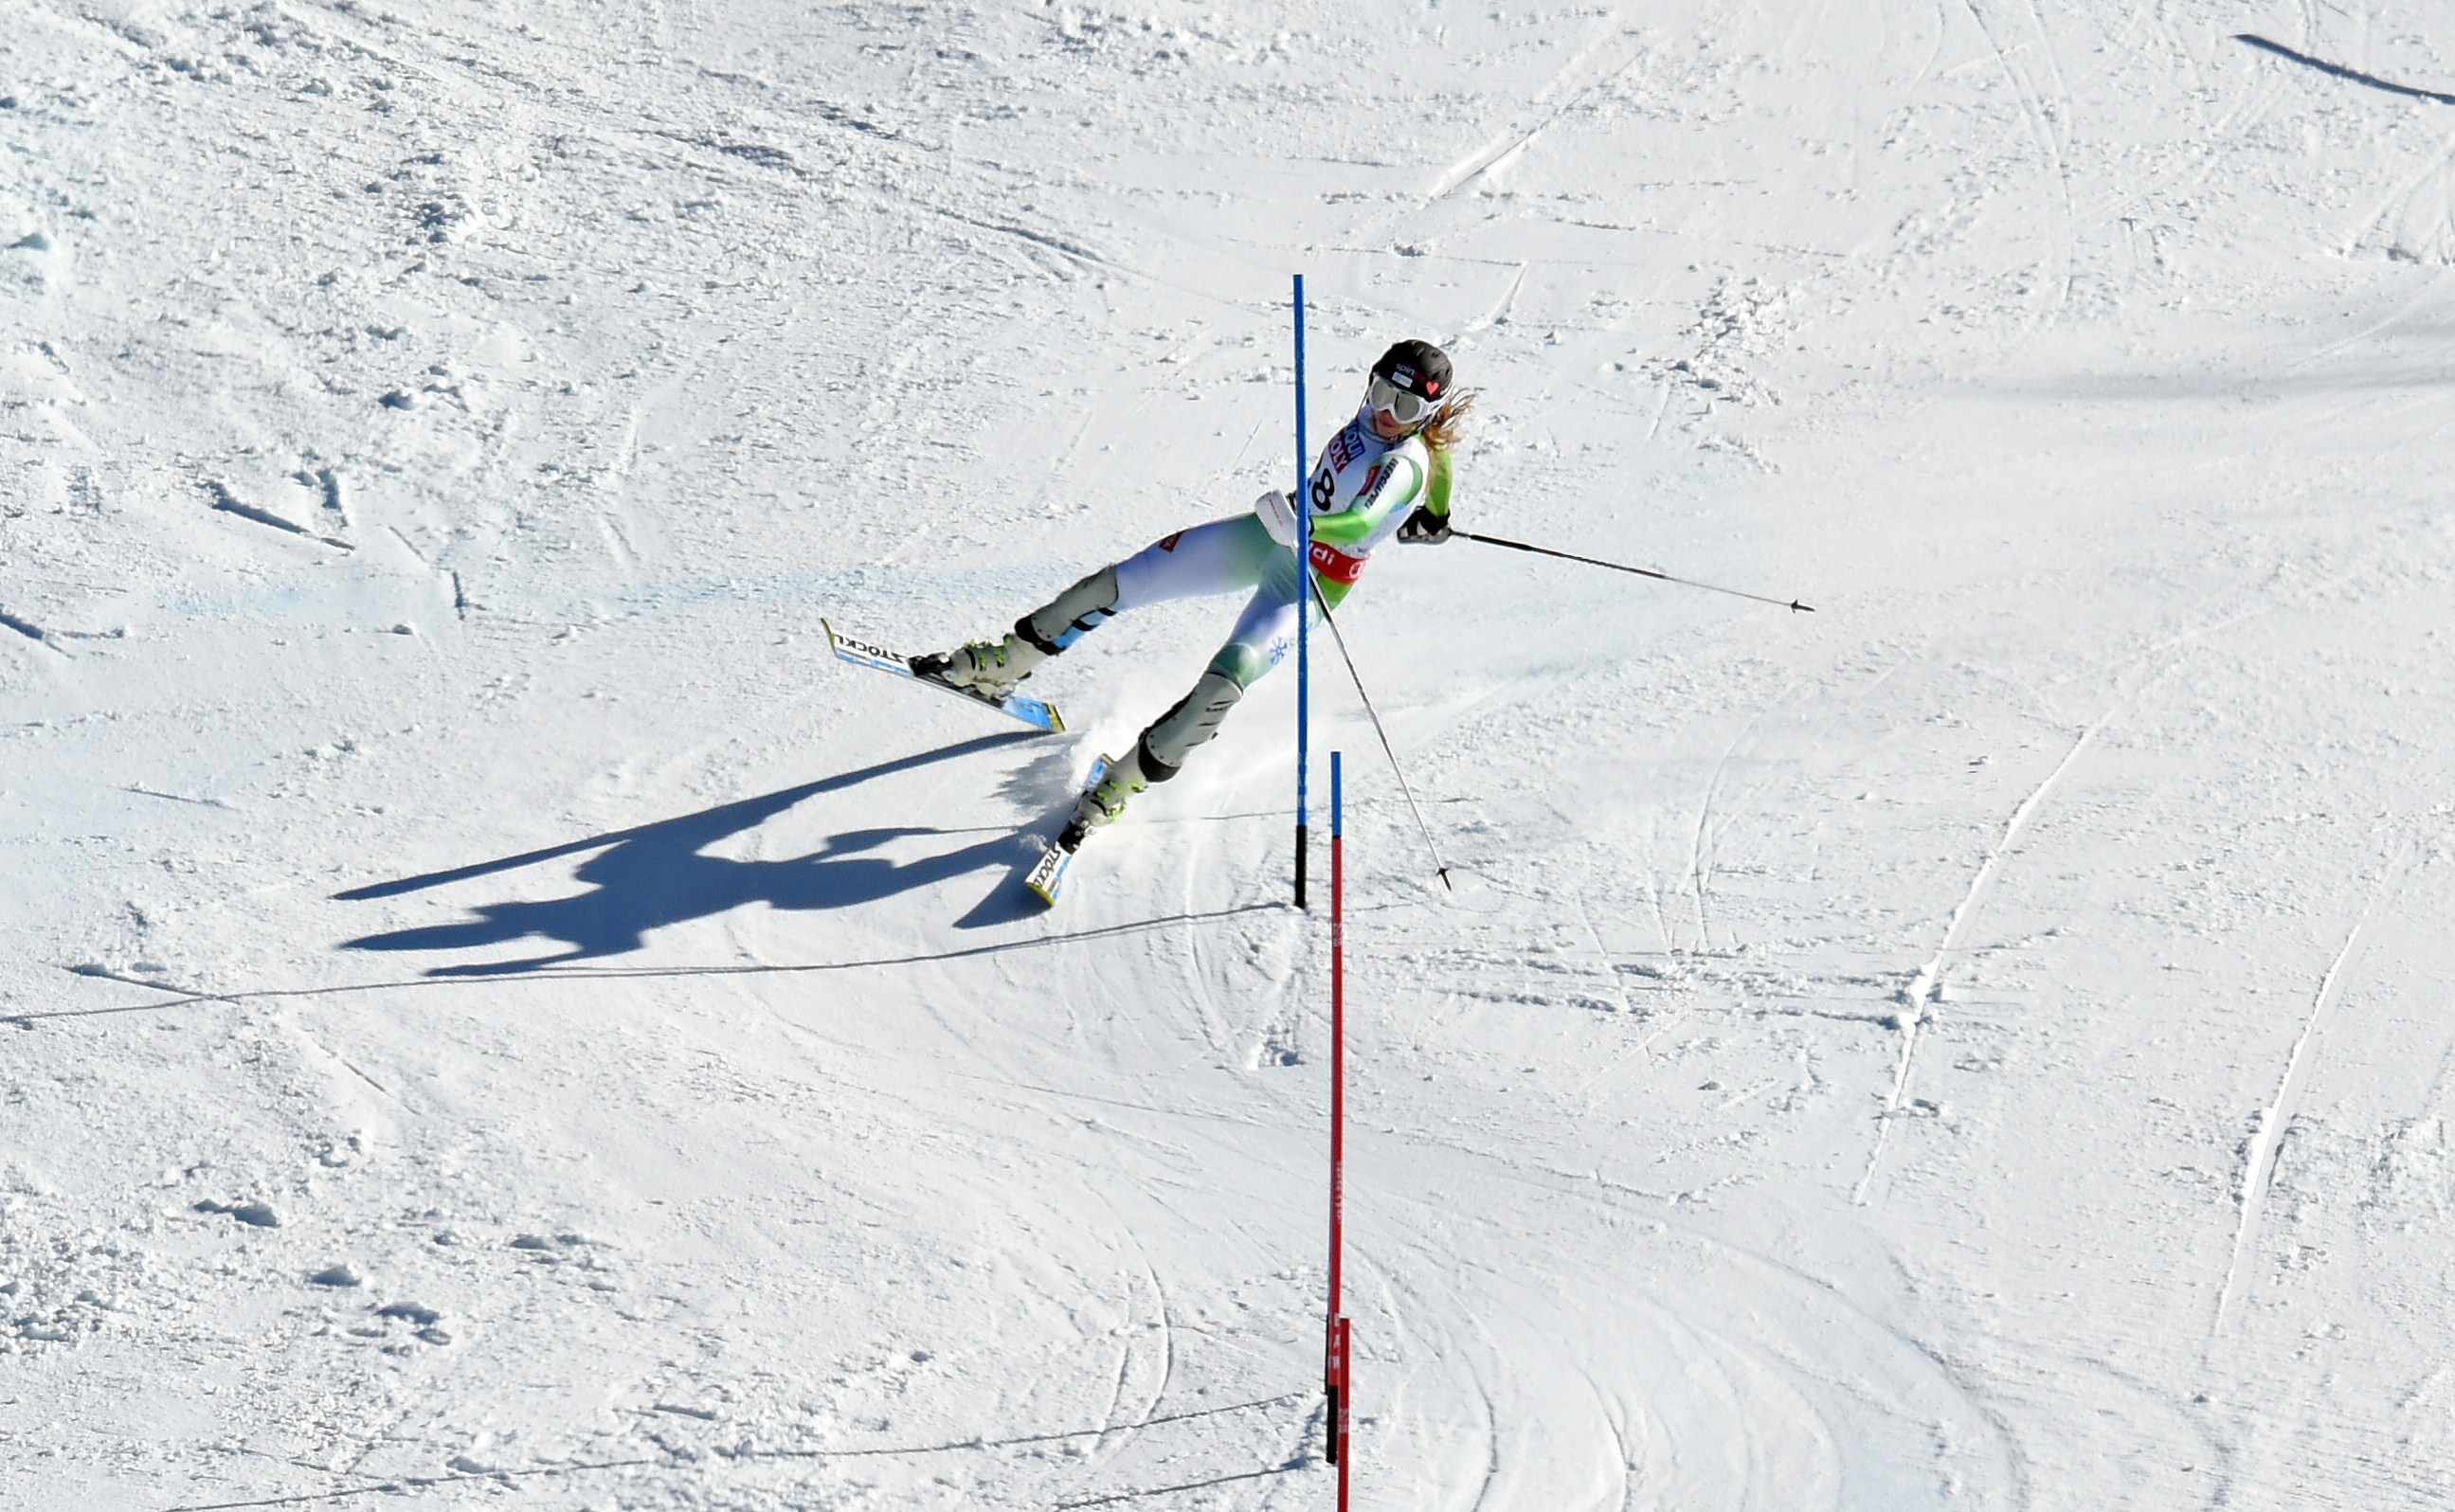 Ana Bucik of Slovenia misses a gate in her second run during the 2015 World Alpine Ski Championships women's slalom on February 14, 2015 in Beaver Creek, Colorado. (credit: DON EMMERT/AFP/Getty Images)